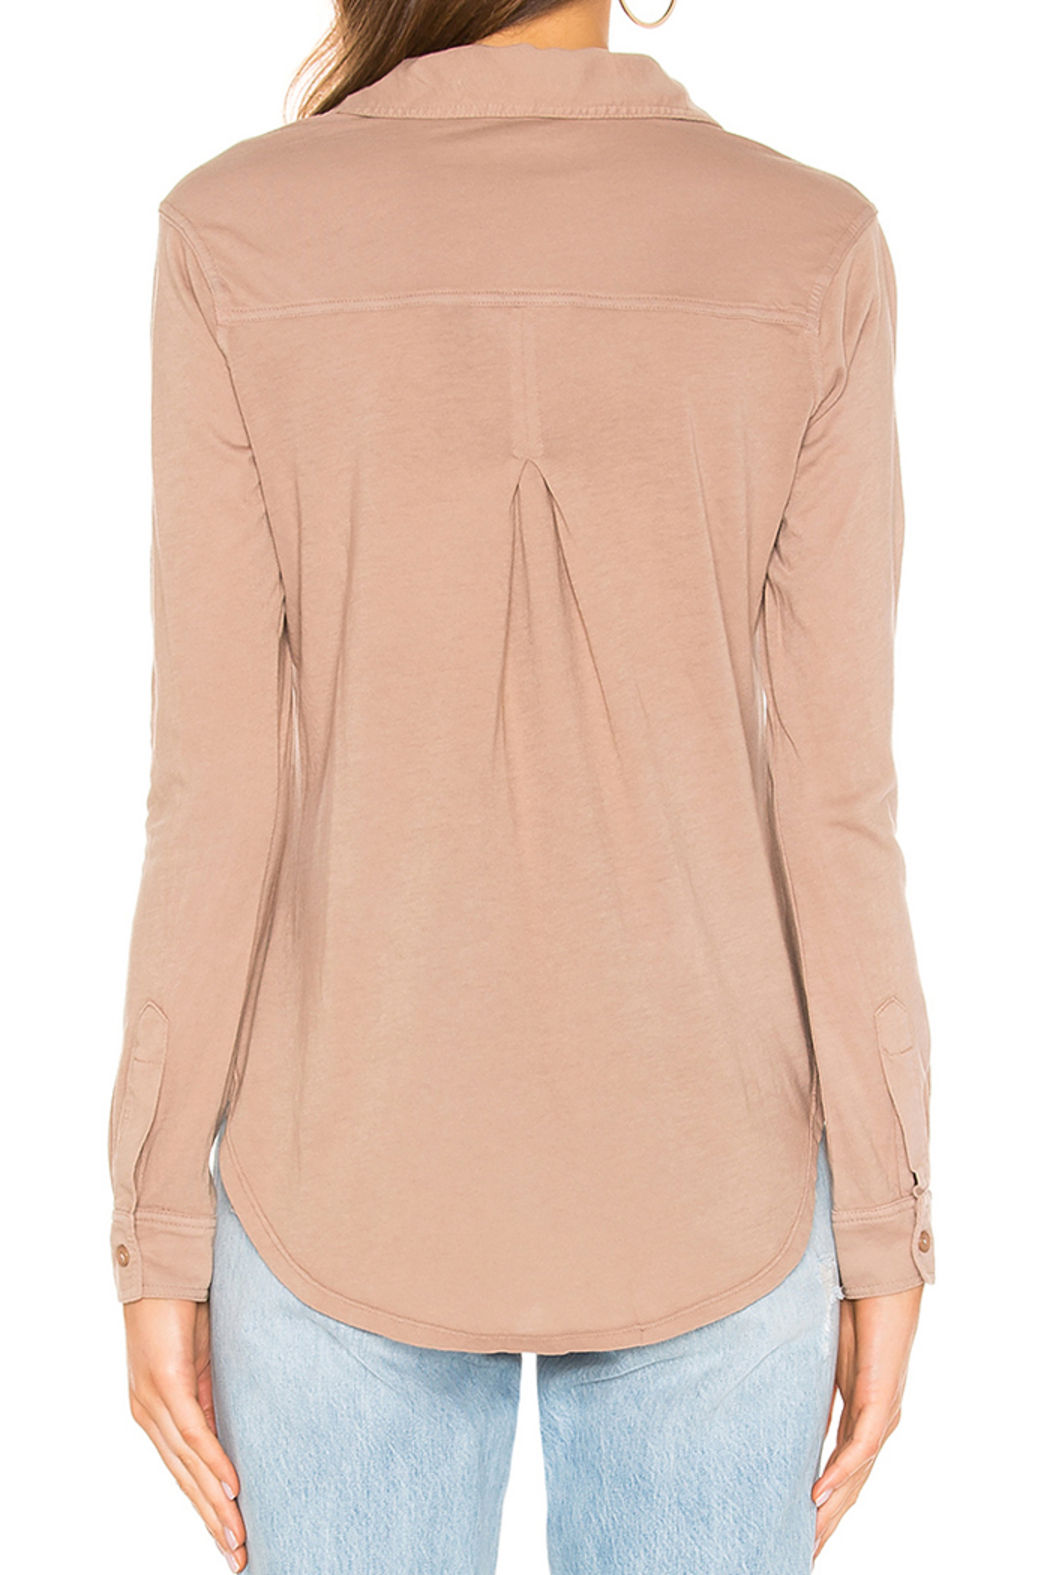 Bobi BOBI LIGHTWEIGHT JERSEY BUTTON DOWN - Side Cropped Image